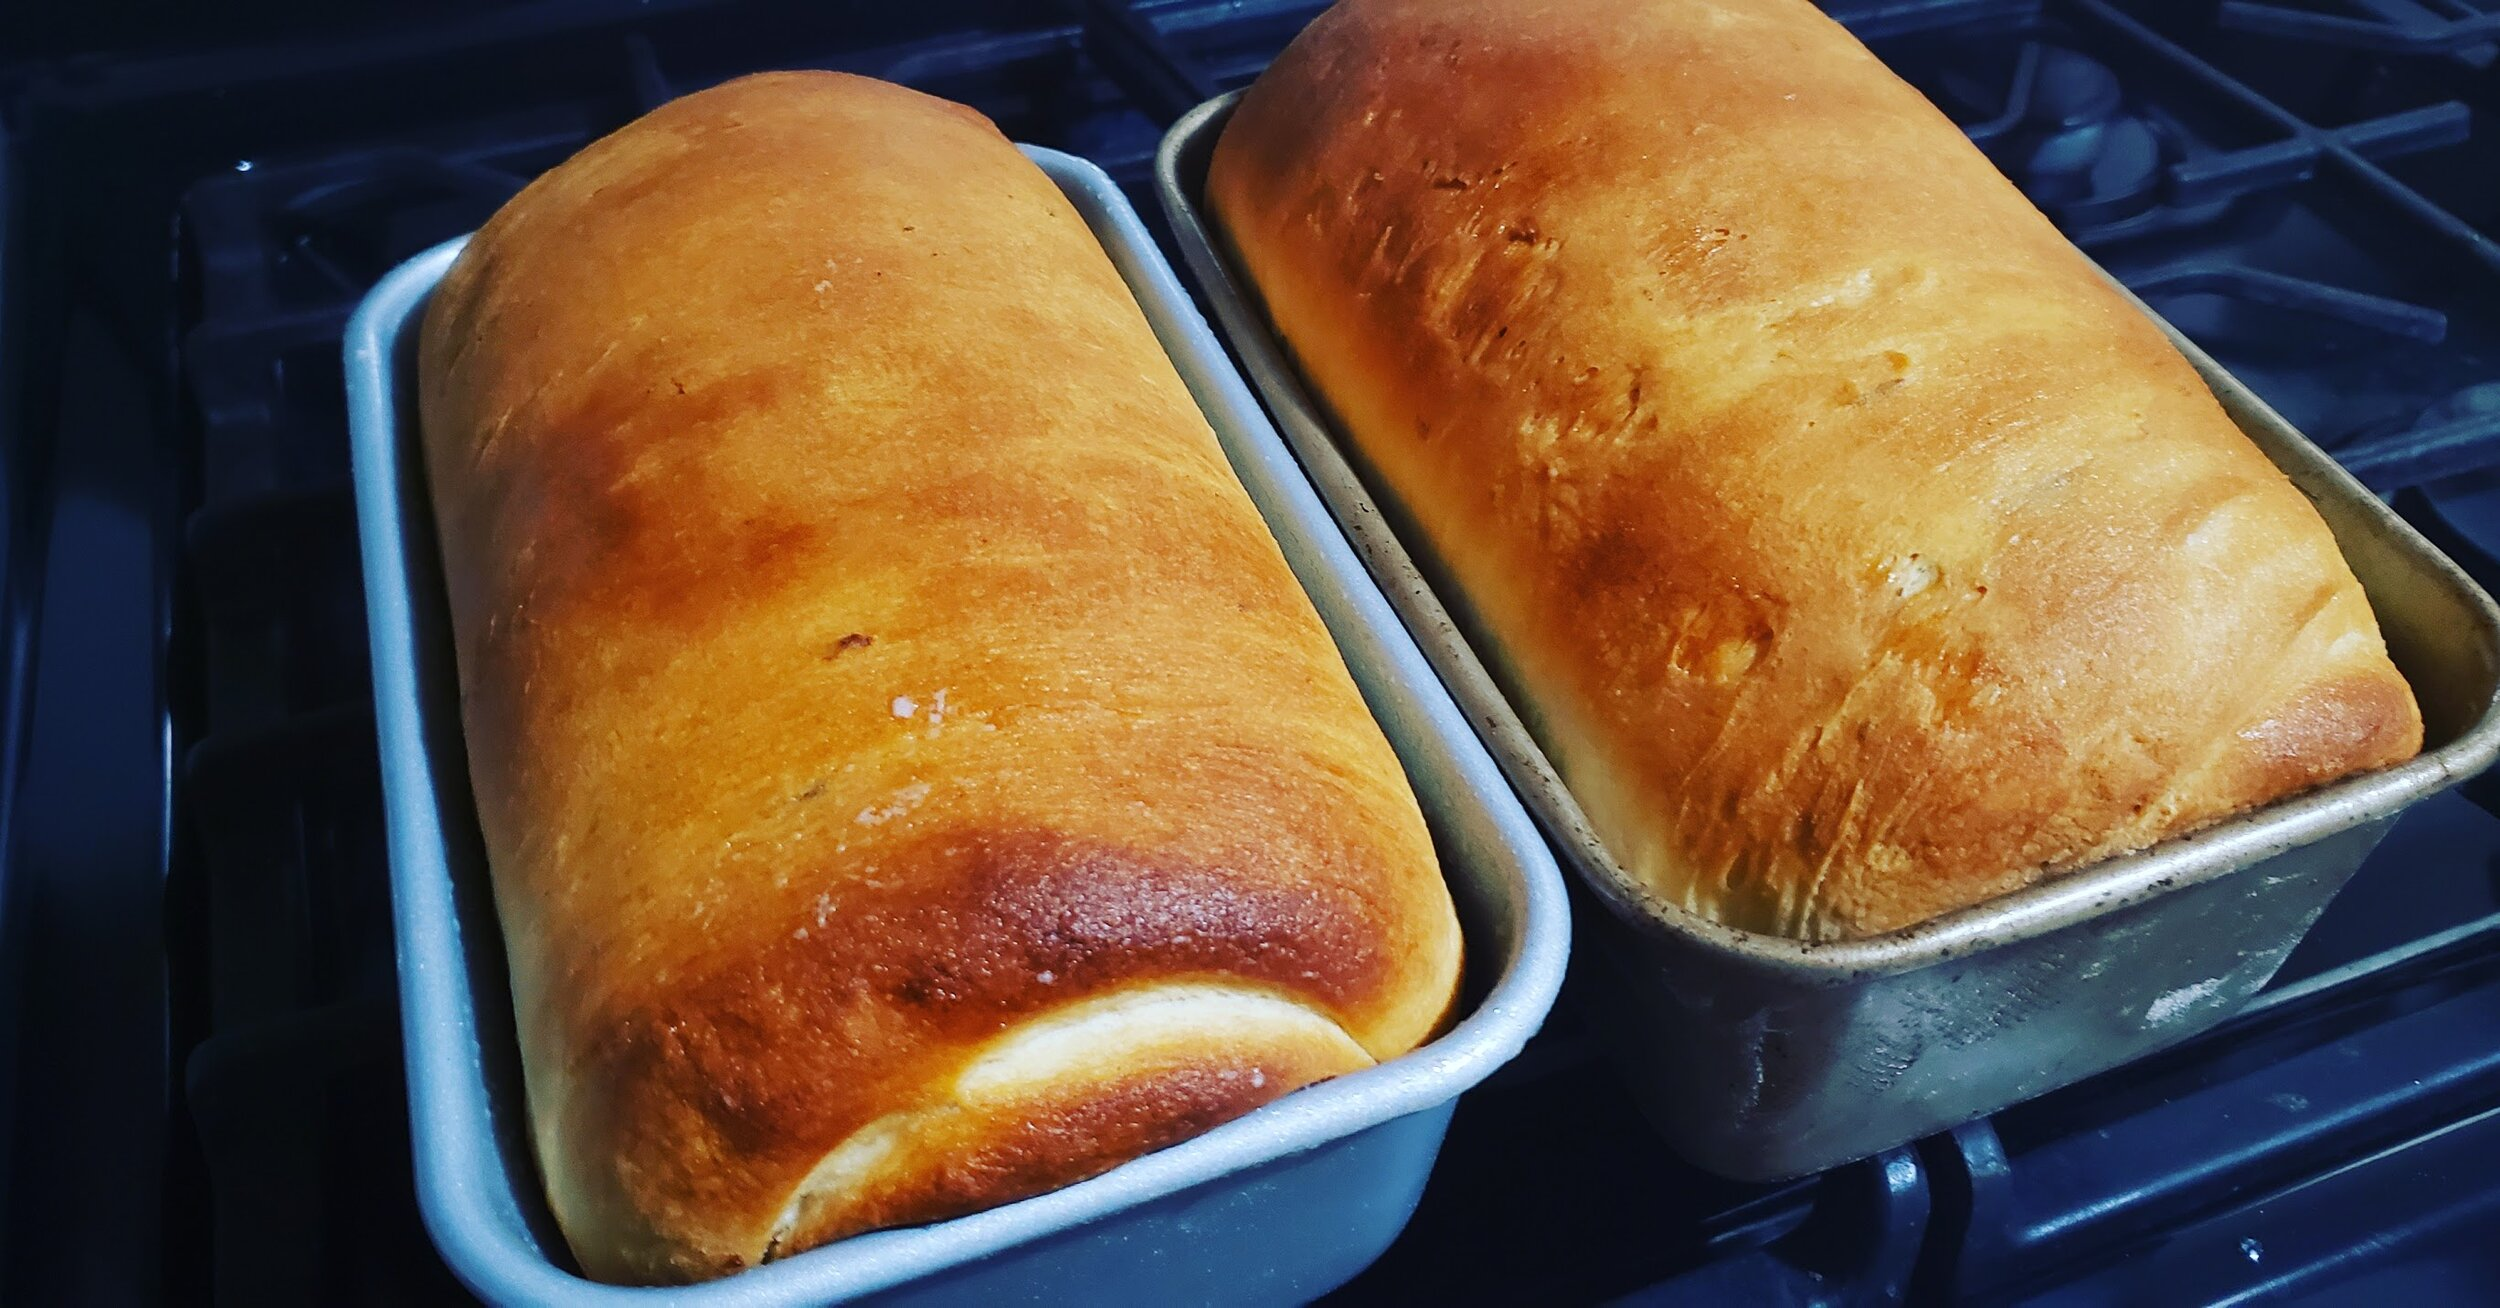 Some supremely delicious, fresh baked bread loaves